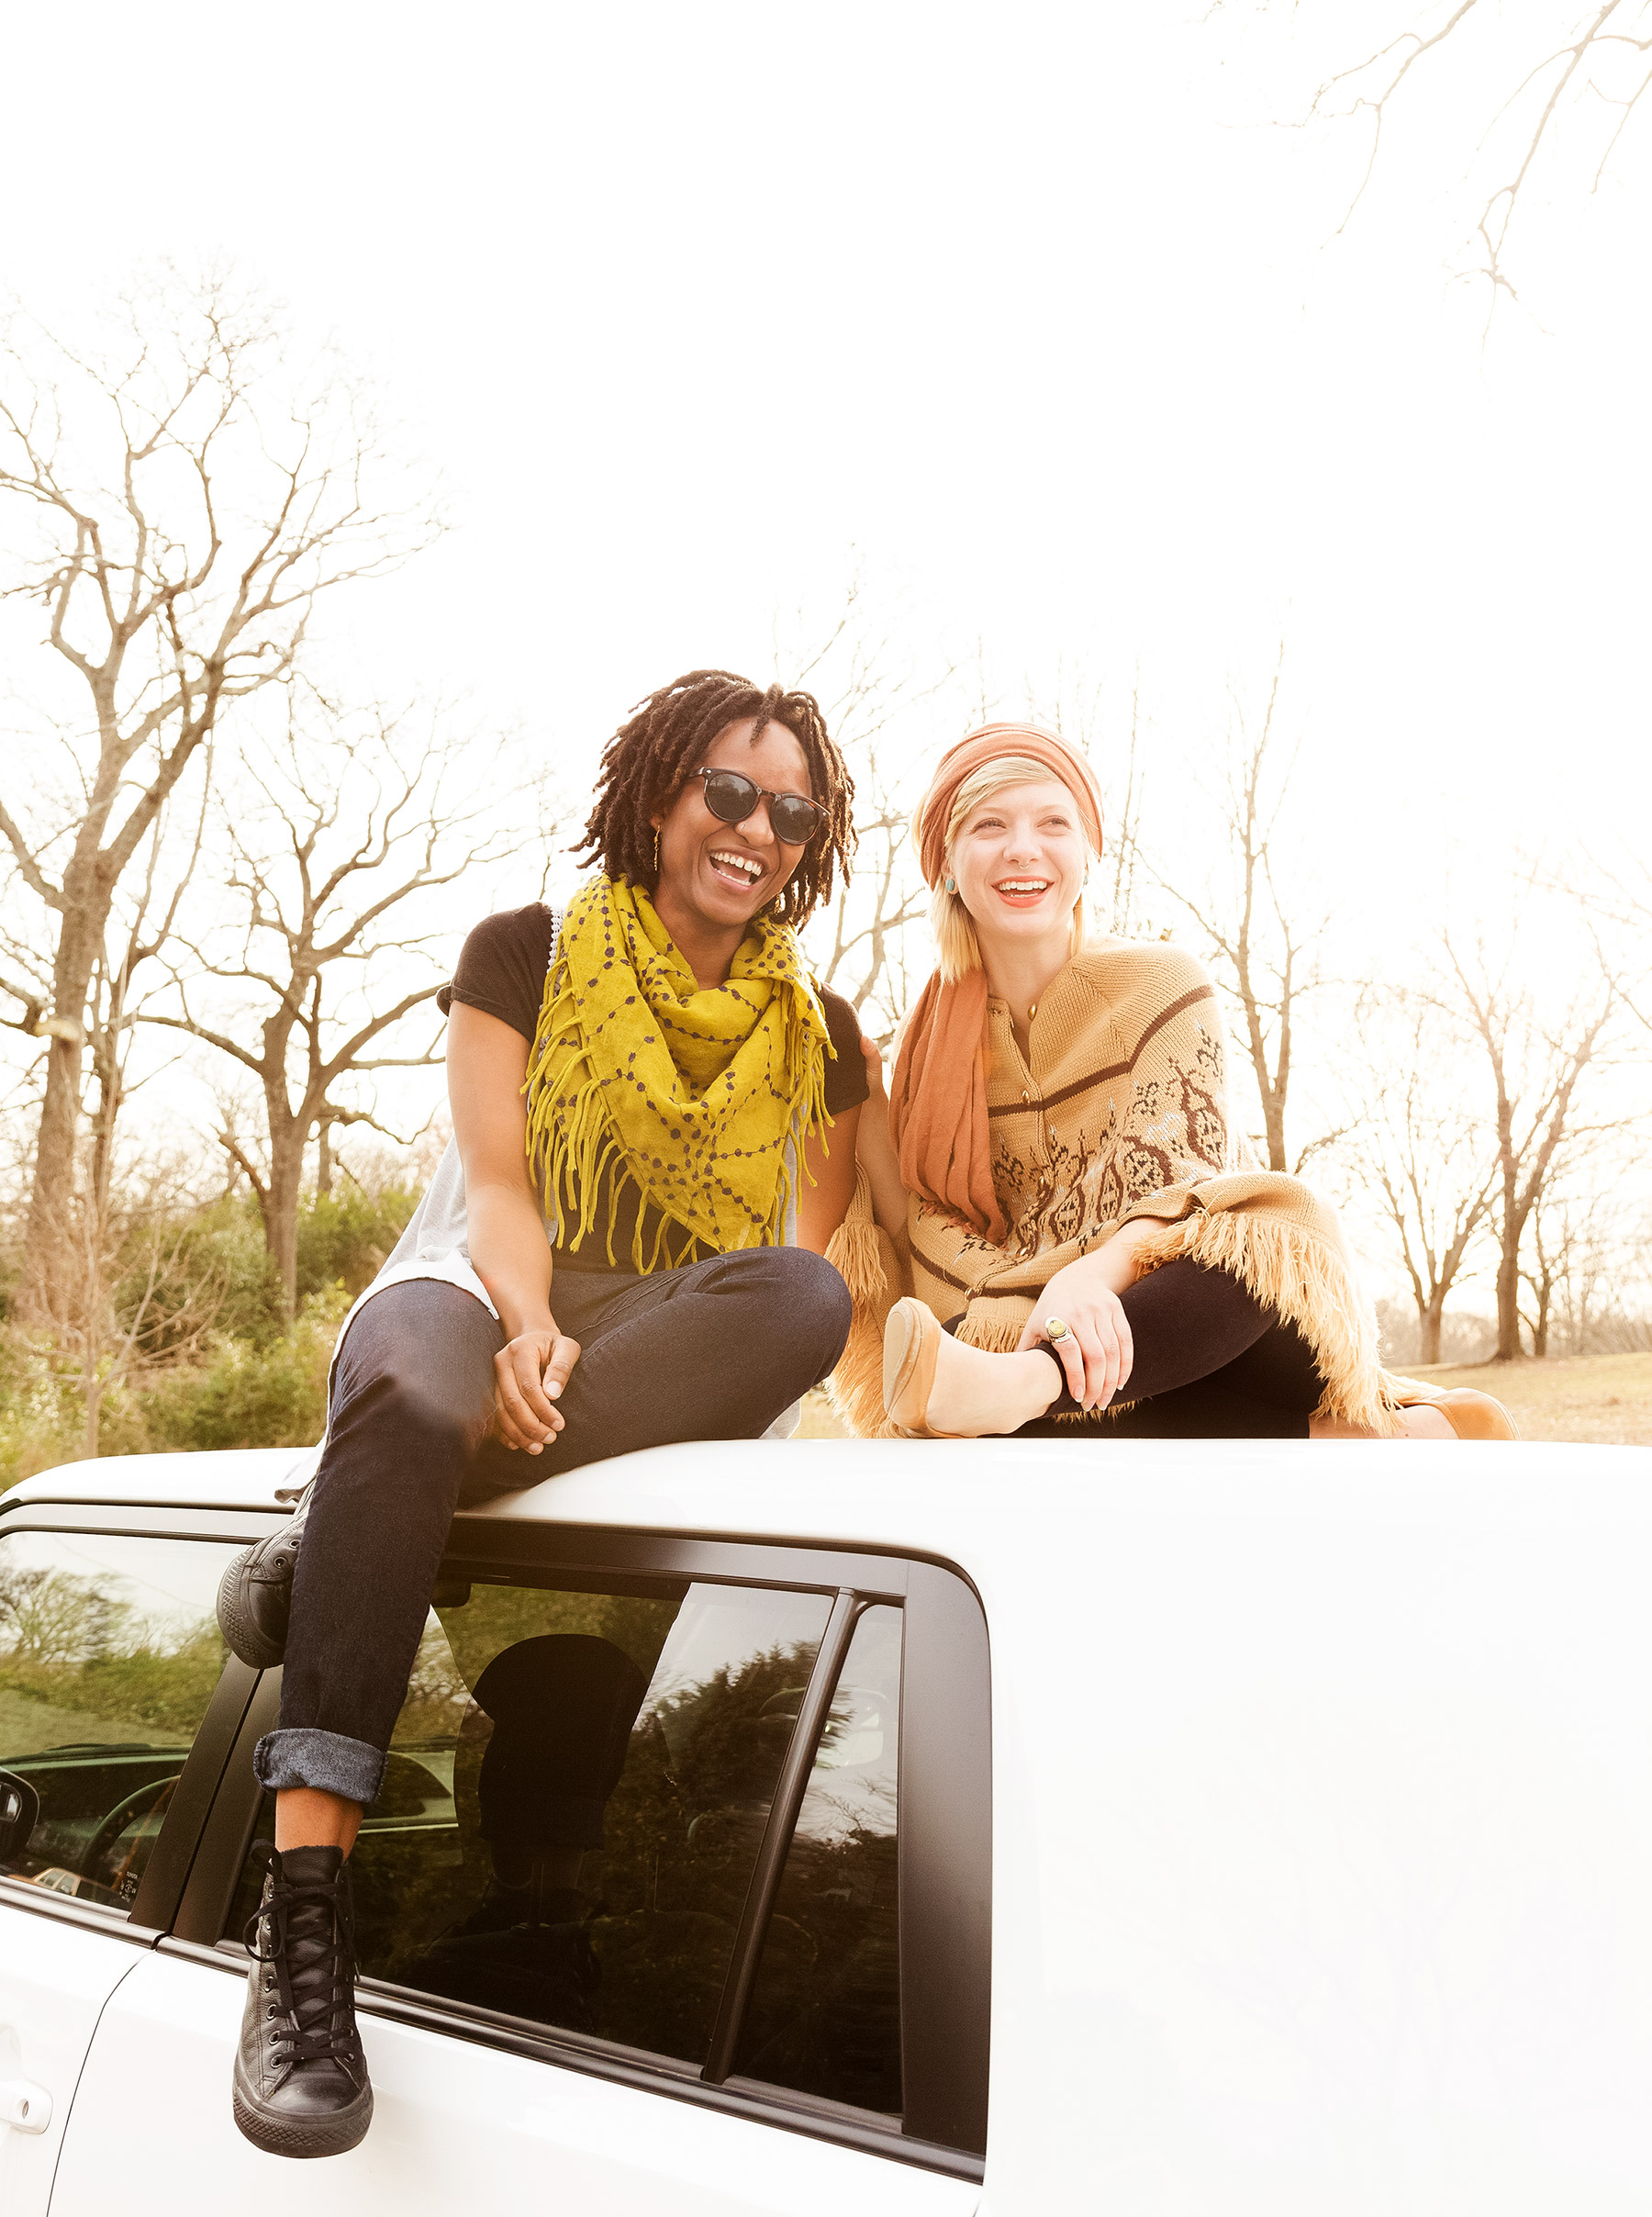 Young Women Sitting on a Car